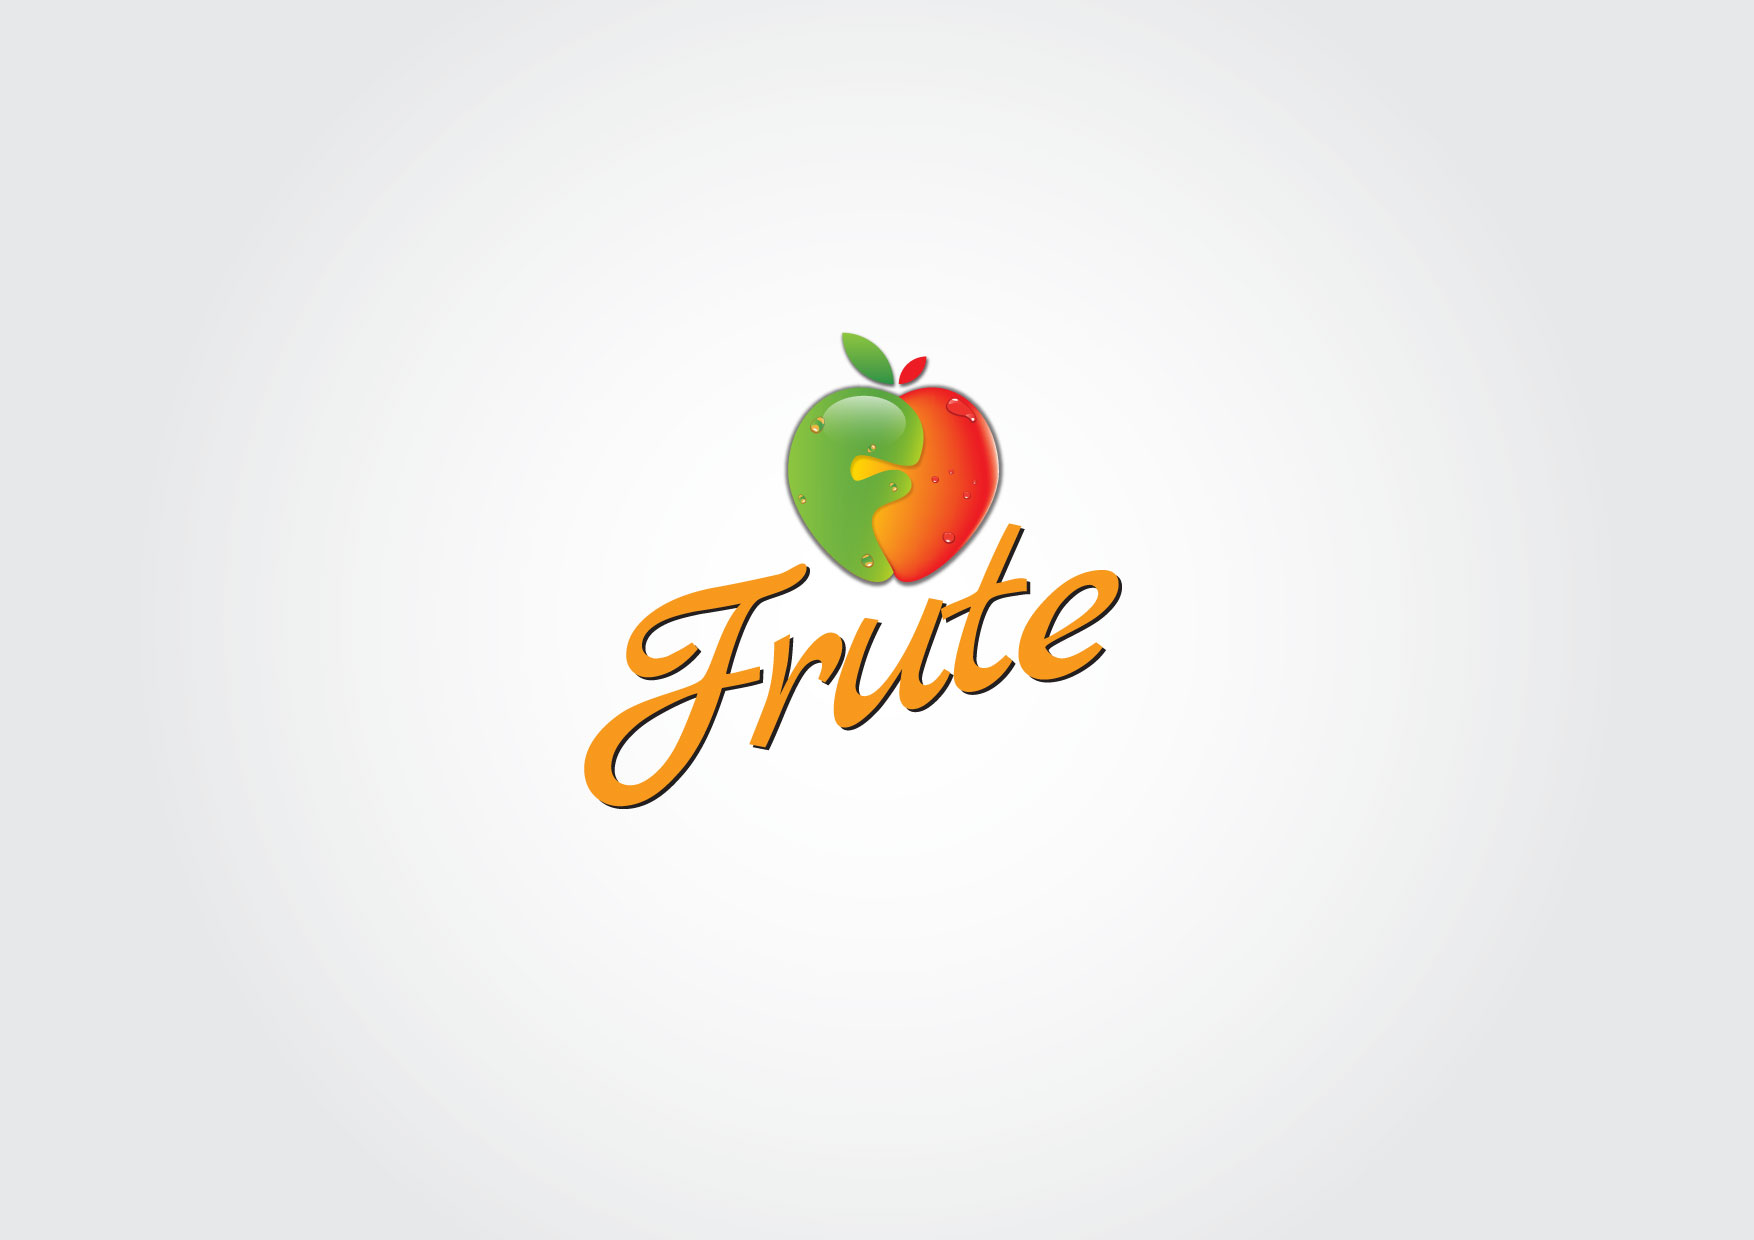 Logo Design by Dit L Pambudi - Entry No. 98 in the Logo Design Contest Imaginative Logo Design for Fruté.